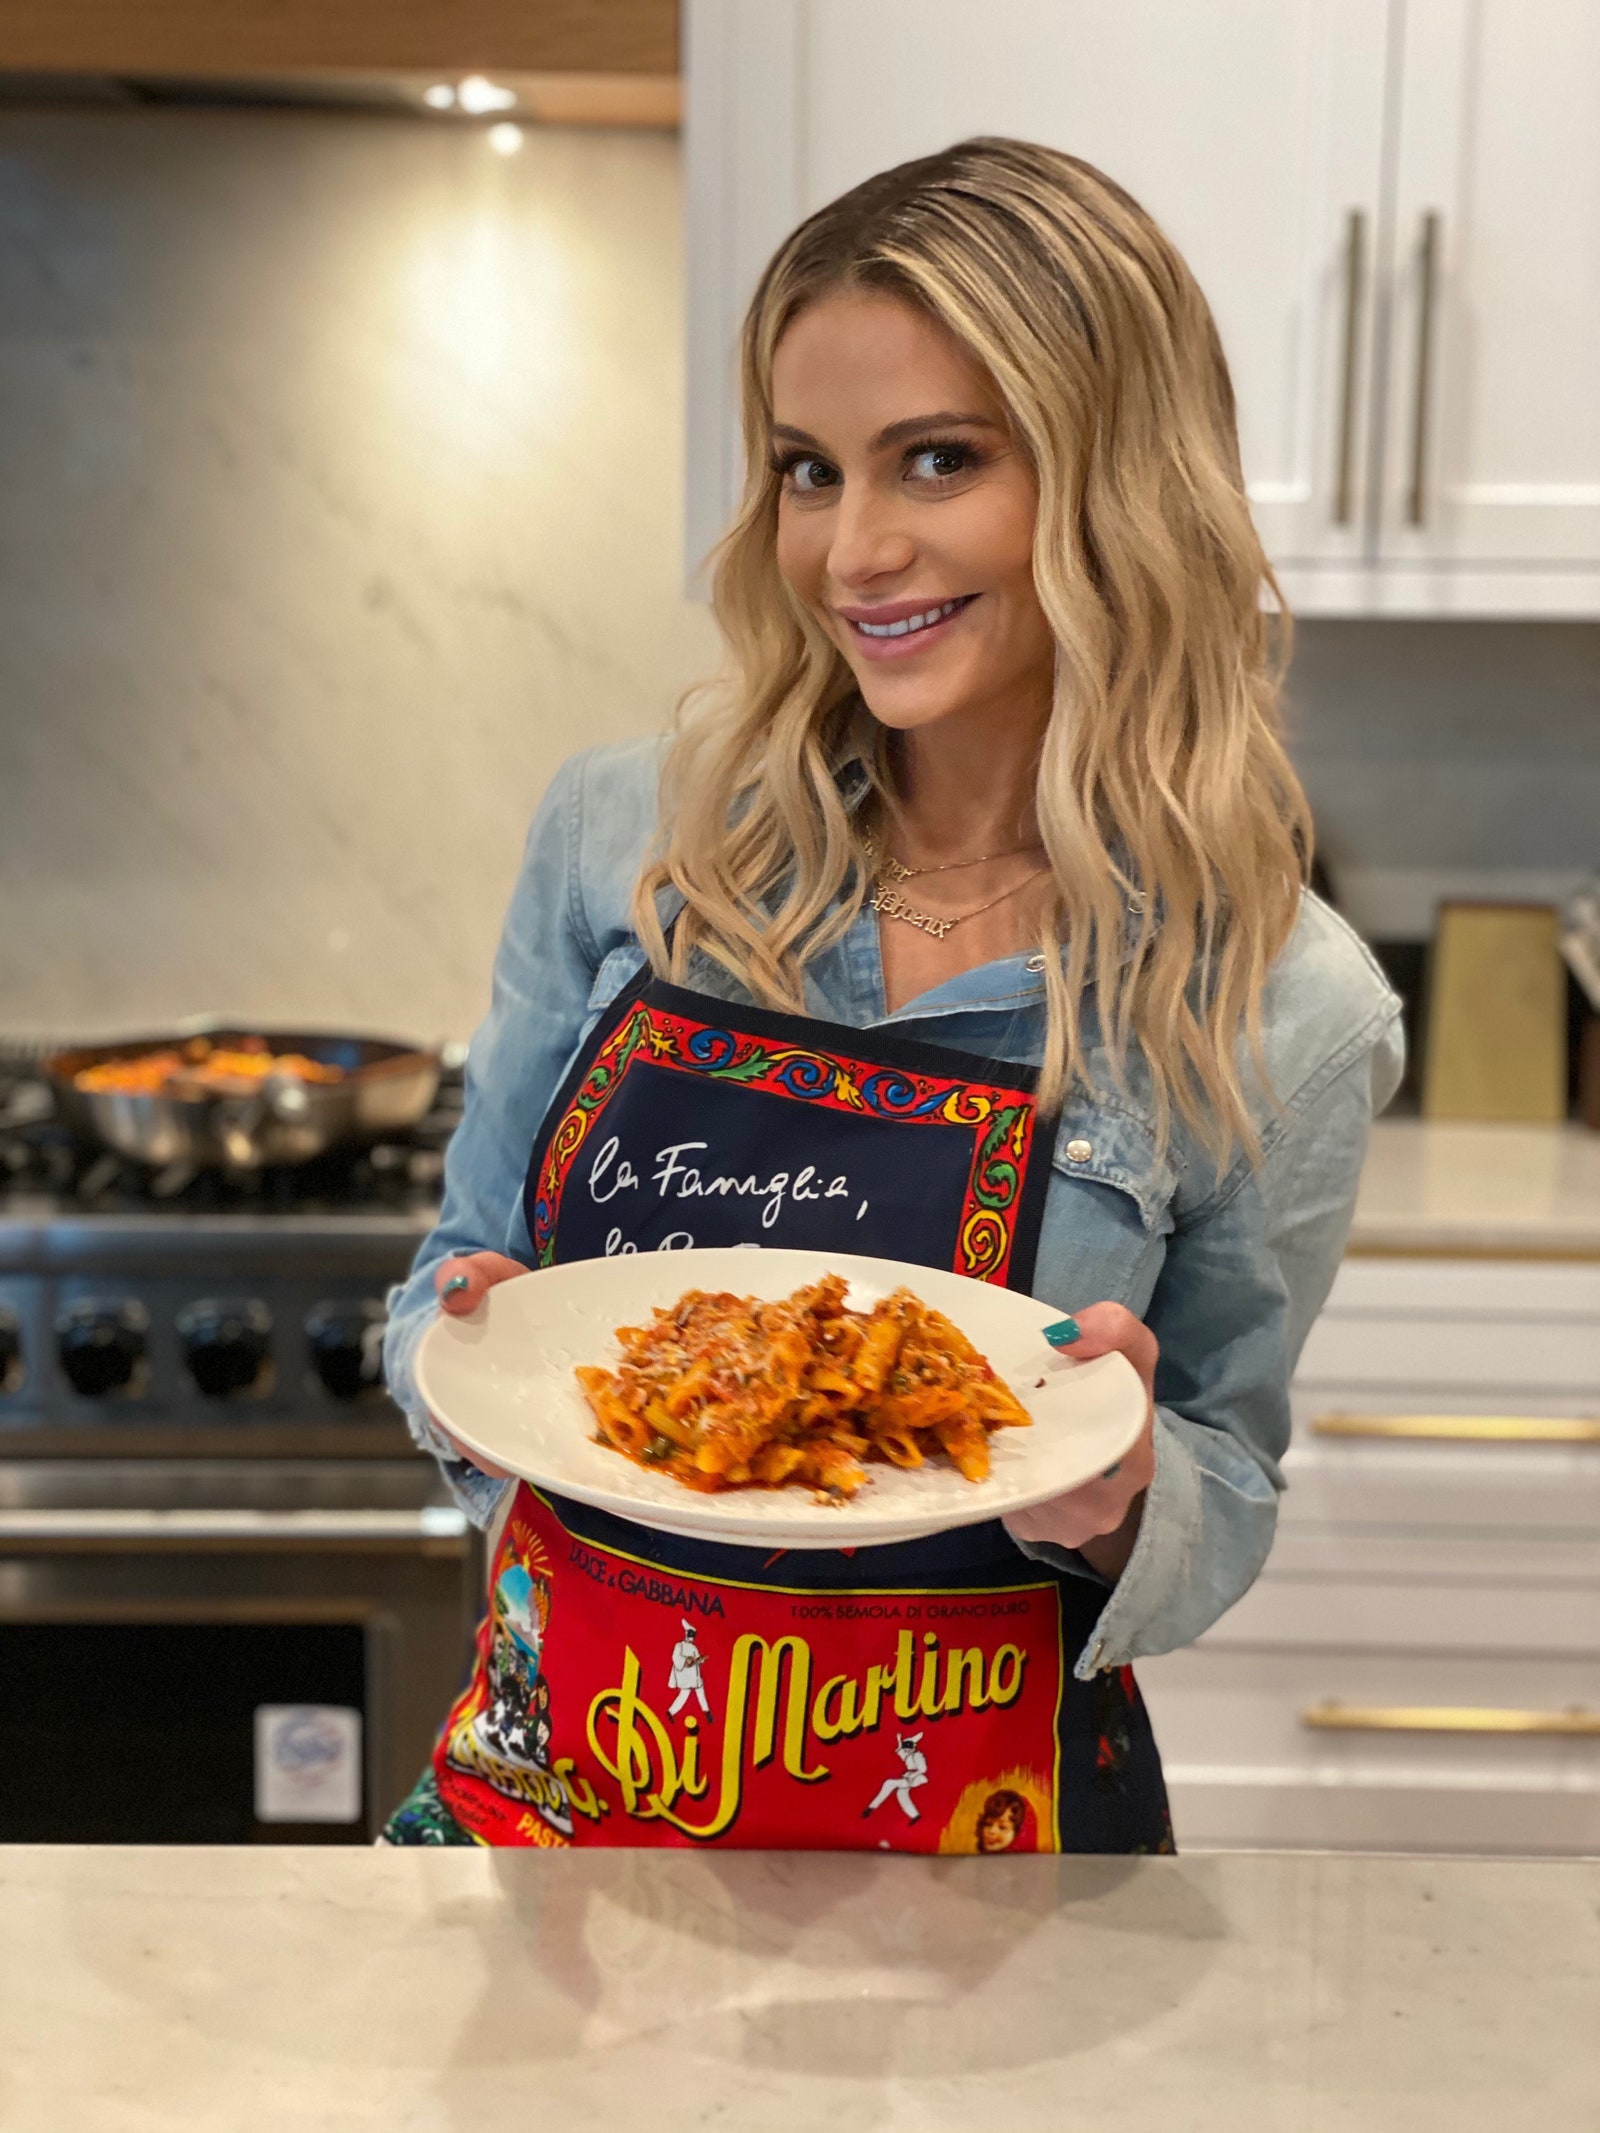 Dorit Kemsley Shares Her Special Tuna Sauce' Recipe